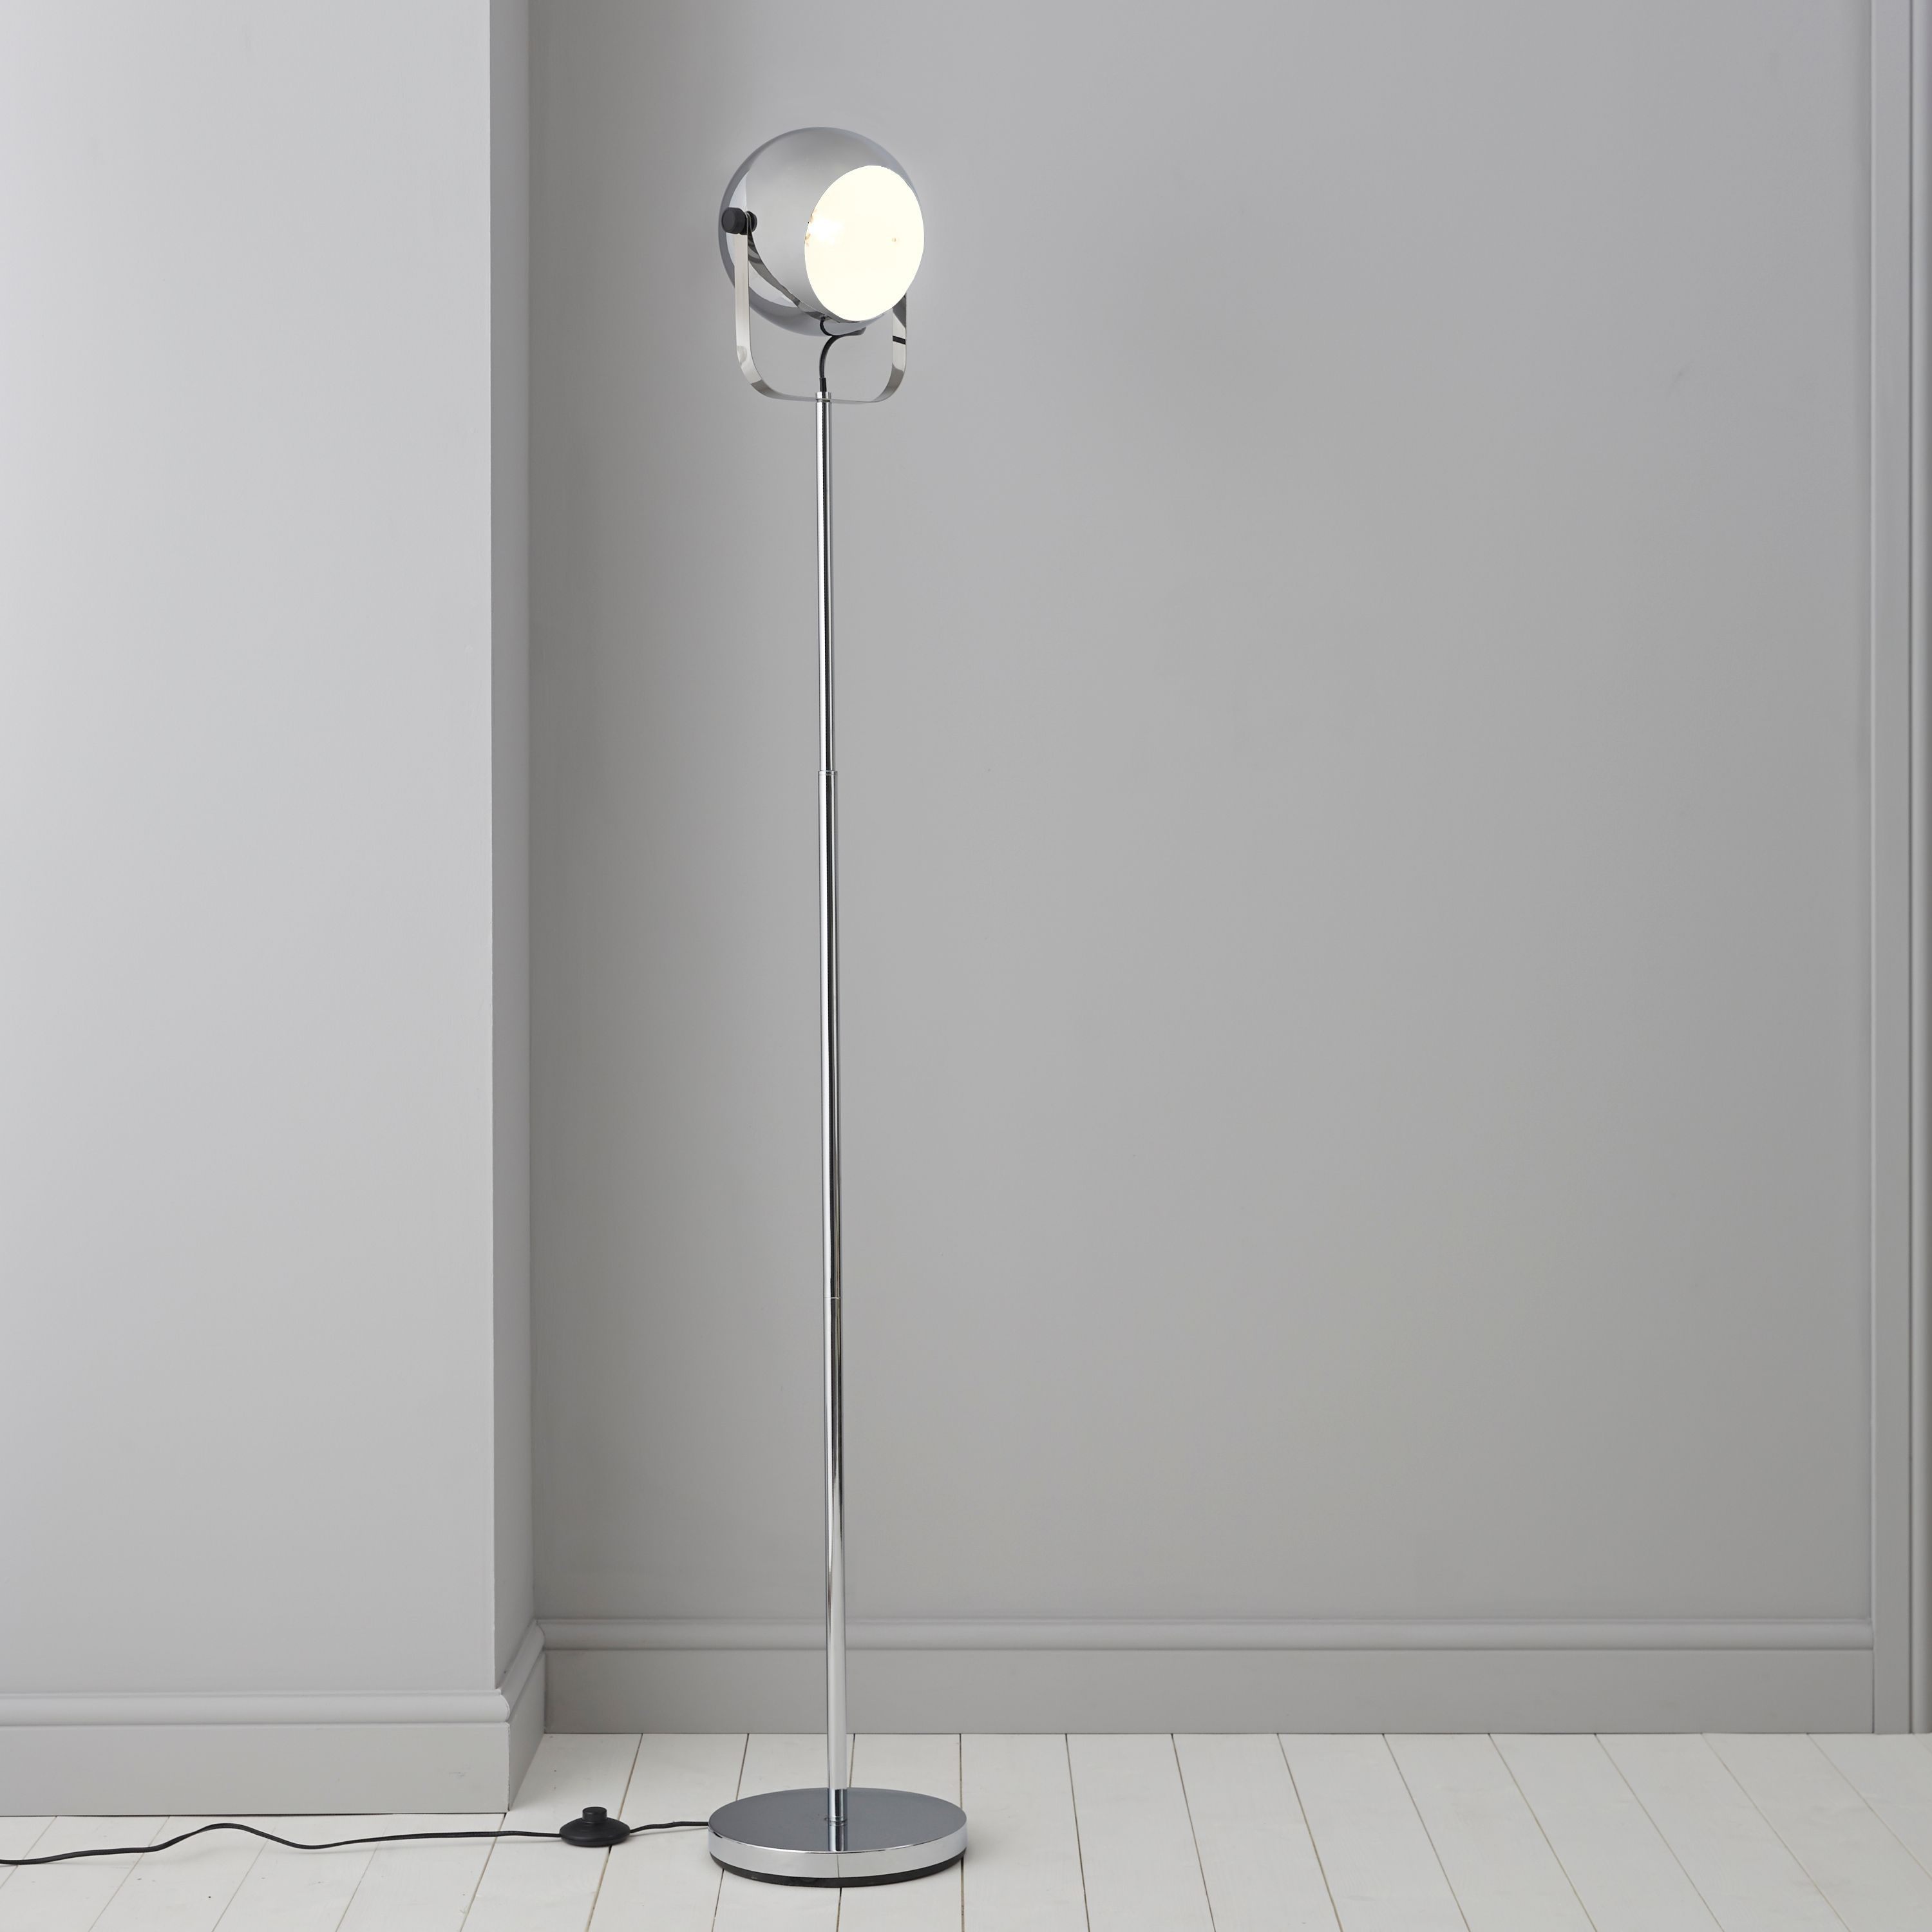 Bobo Chrome Effect Floor Lamp | Floor lamp, Sitting rooms and Kitchens